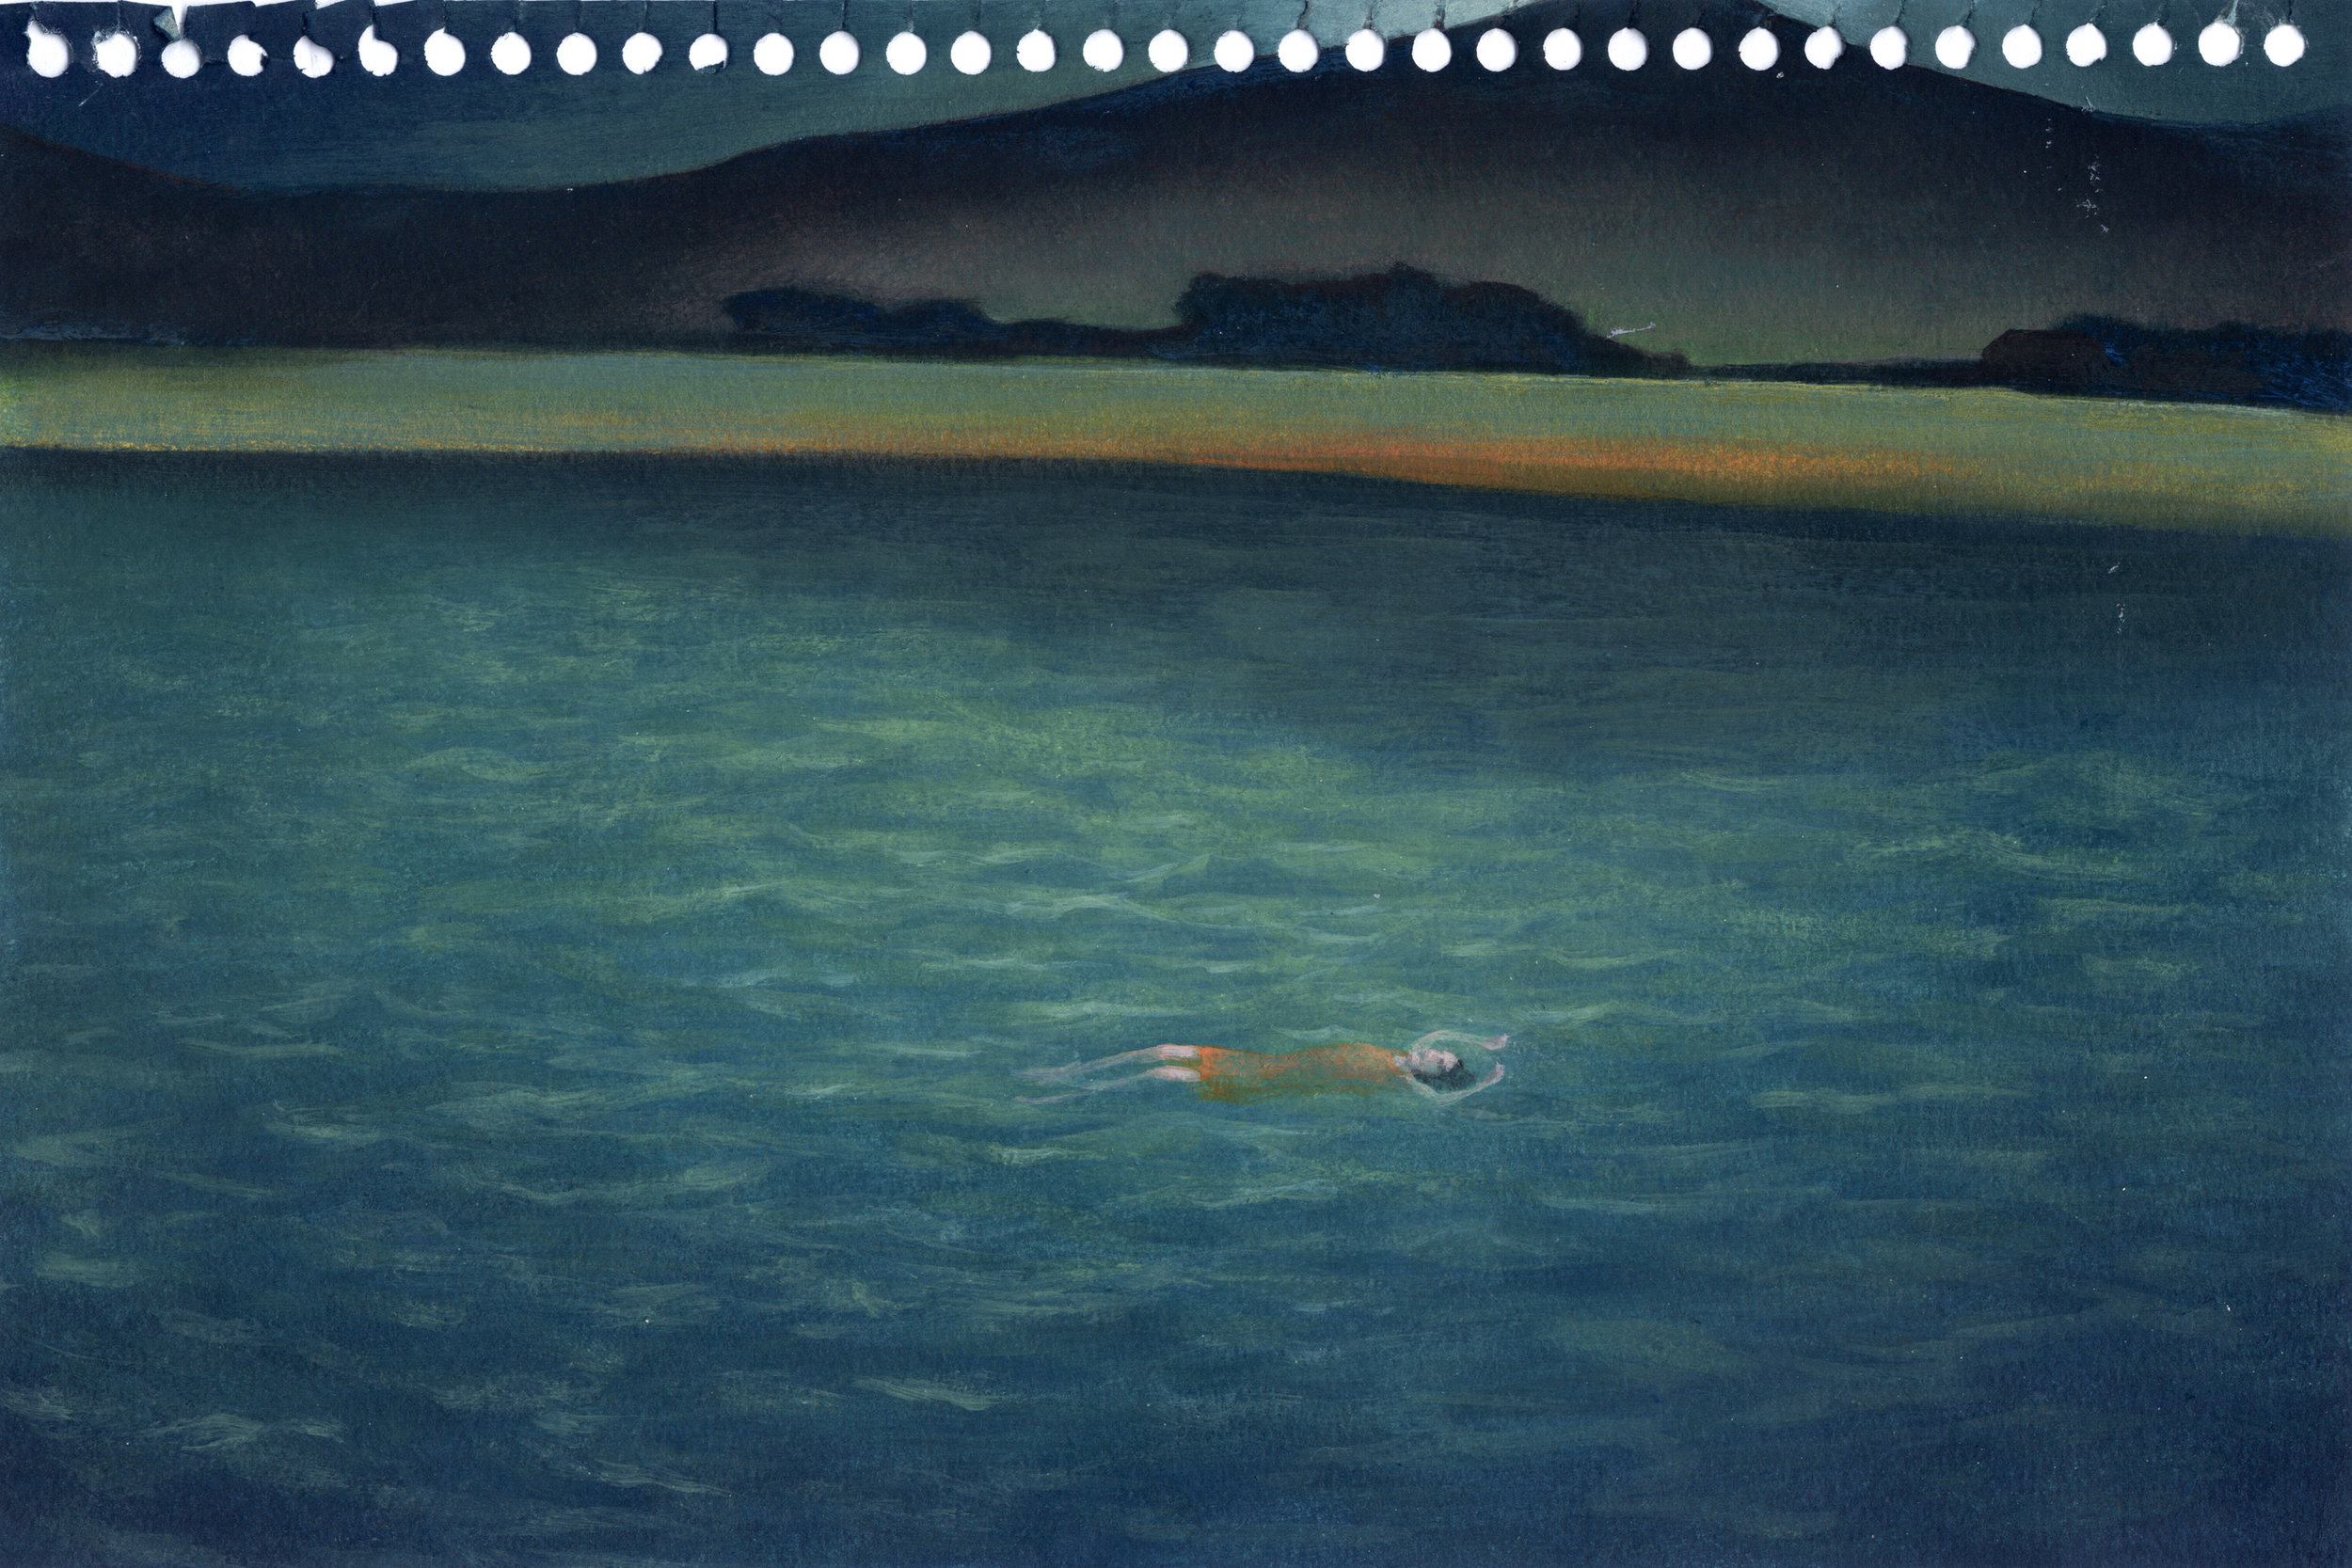 Blue McRight   Untitled (Night Dive)  (2011) Oil on paper, 9 x 6in.